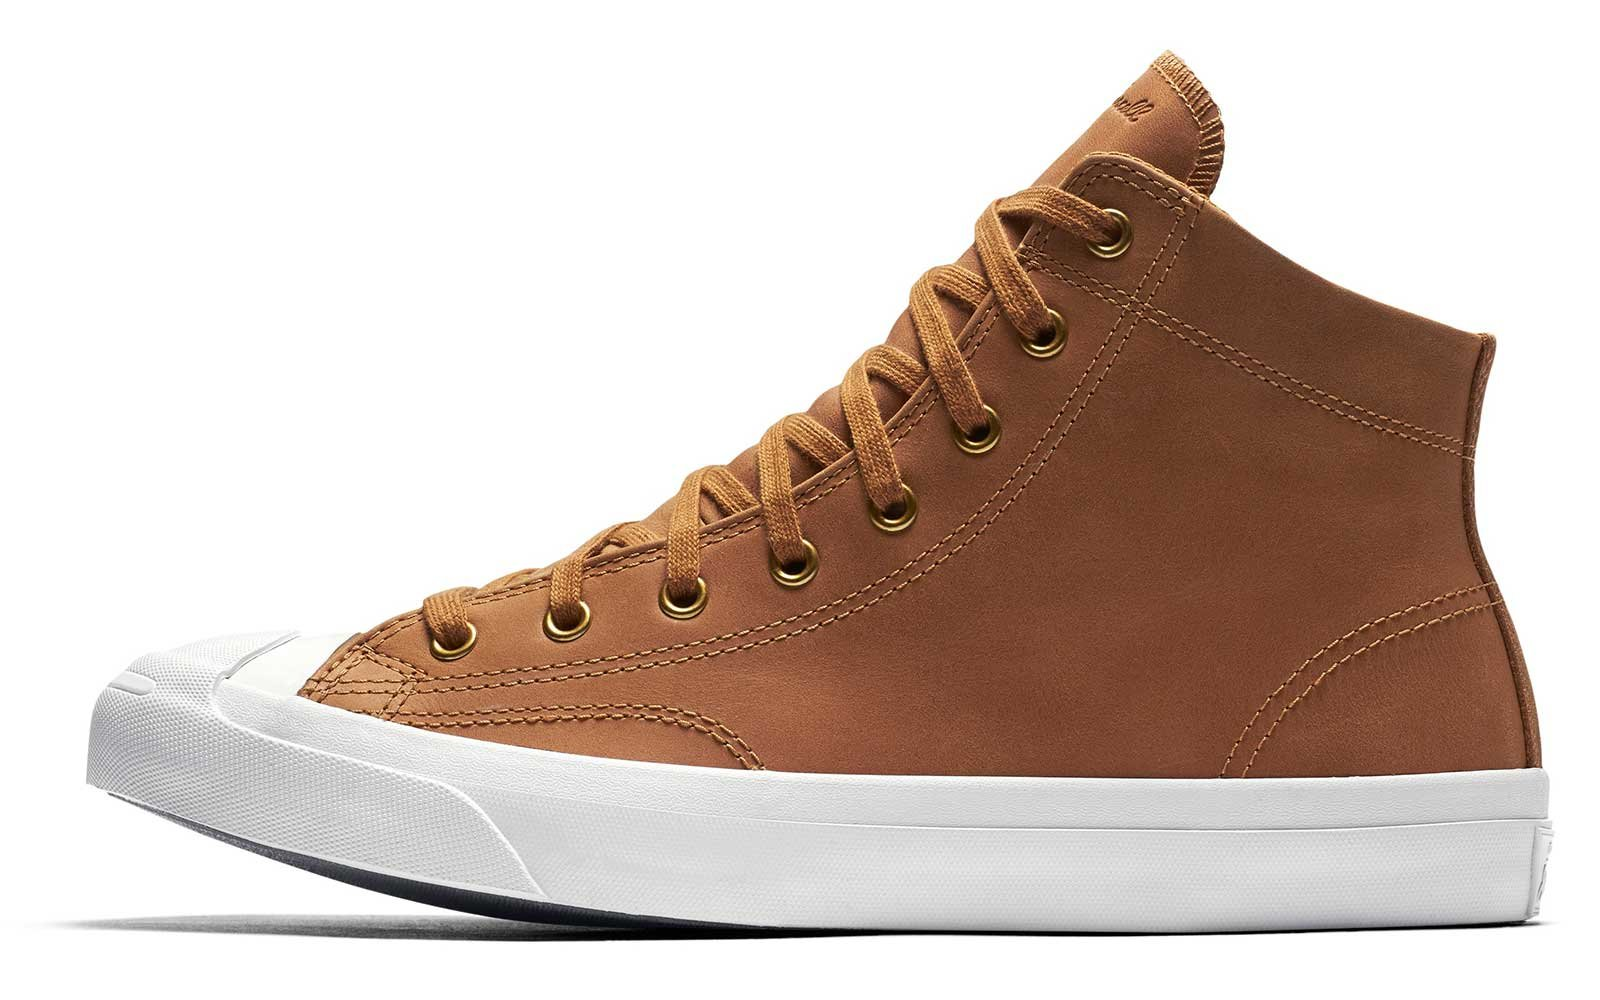 Converse Jack Purcell Mid Boot Leather High Top